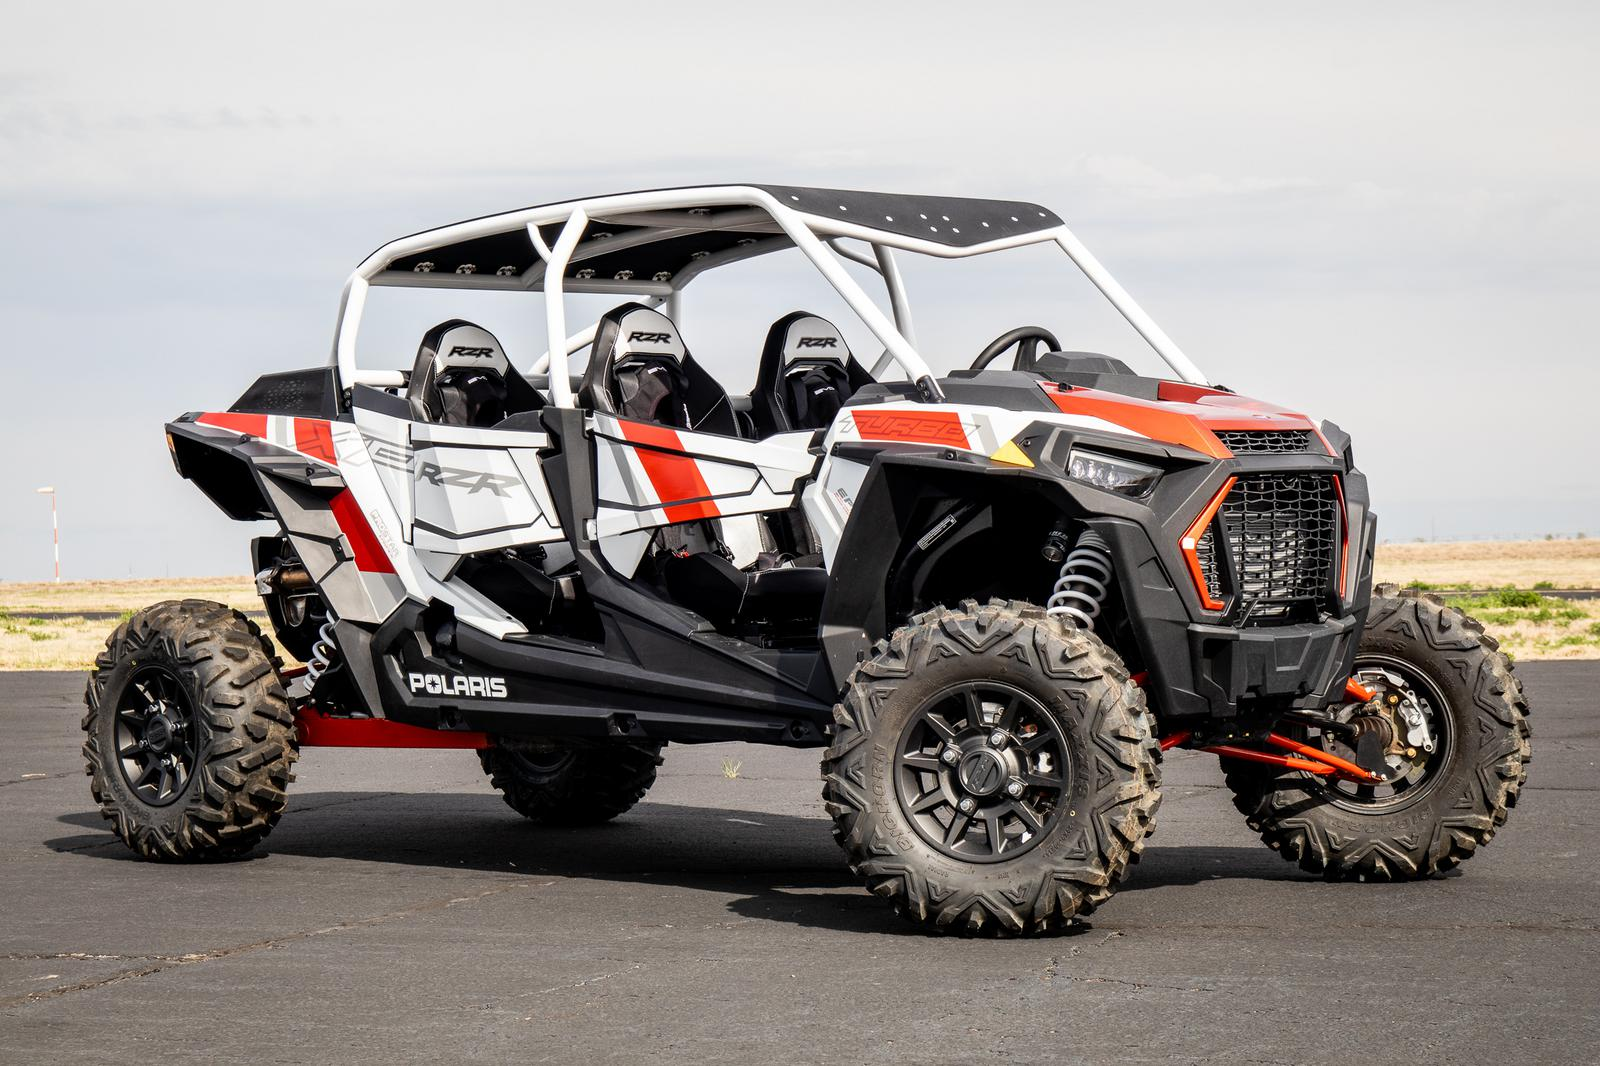 2019 Polaris Industries RZR-19,TURBO4,PS,MT WHT PRL for sale in